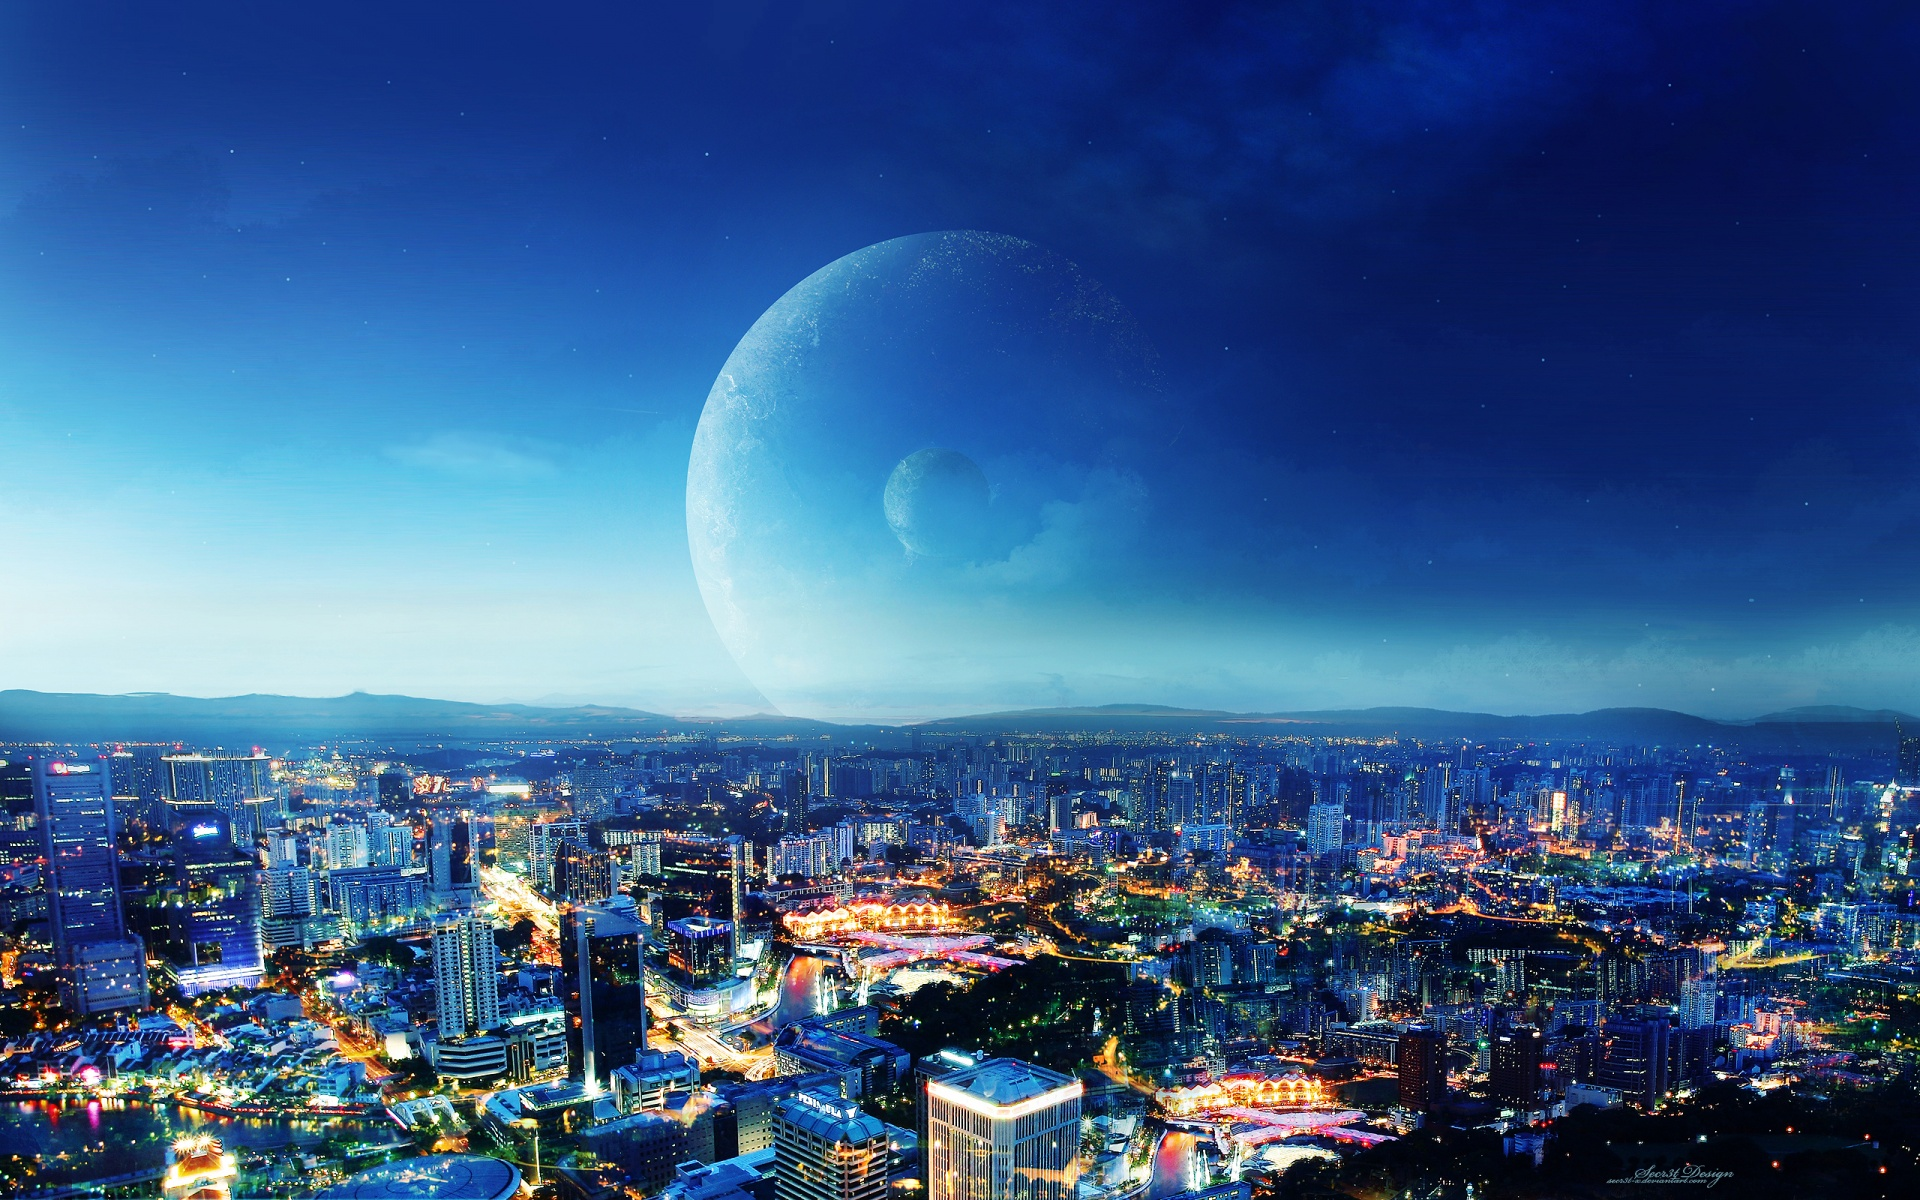 CIty Night Fantasy Wallpapers In Jpg Format For Free Download